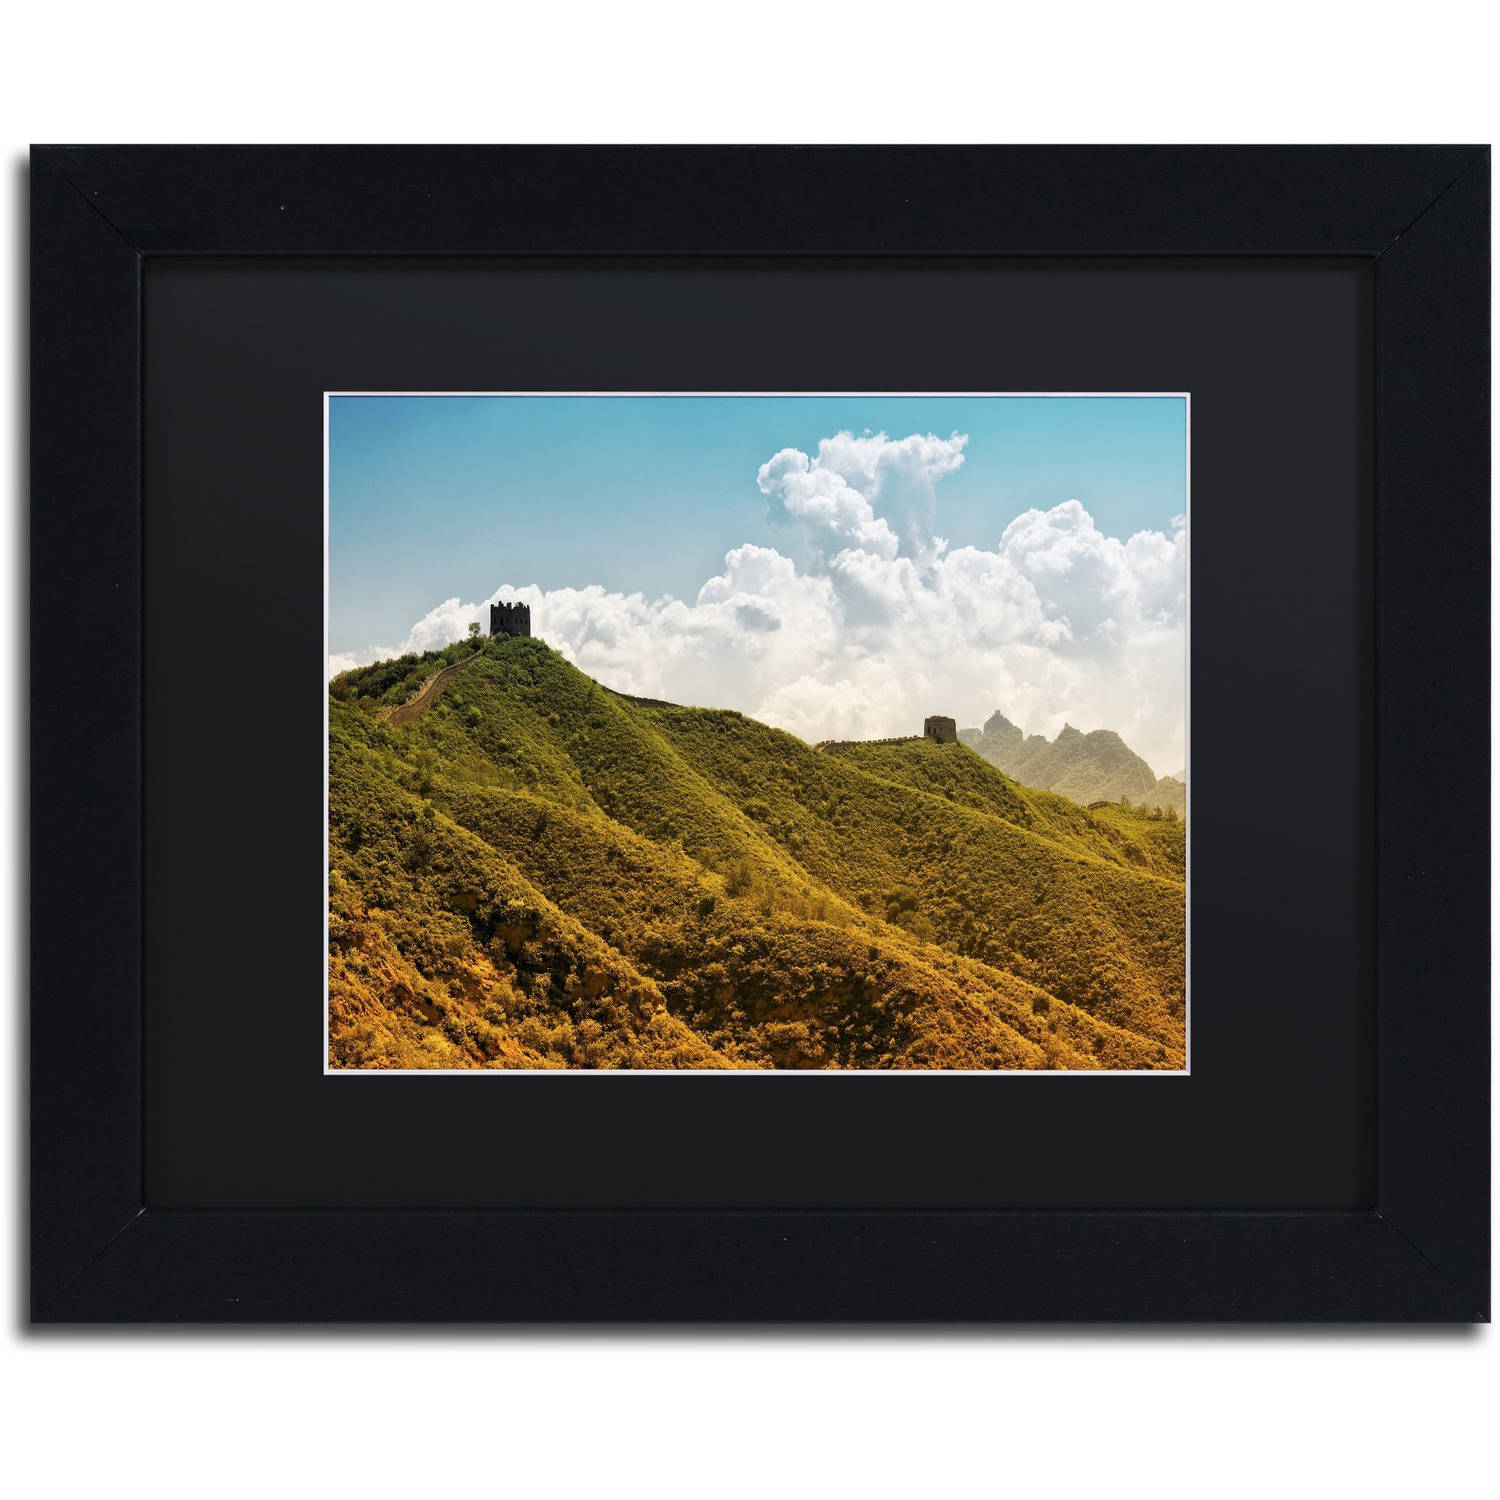 "Trademark Fine Art ""Great Wall II"" Canvas Art by Philippe Hugonnard, Black Matte, Black Frame"